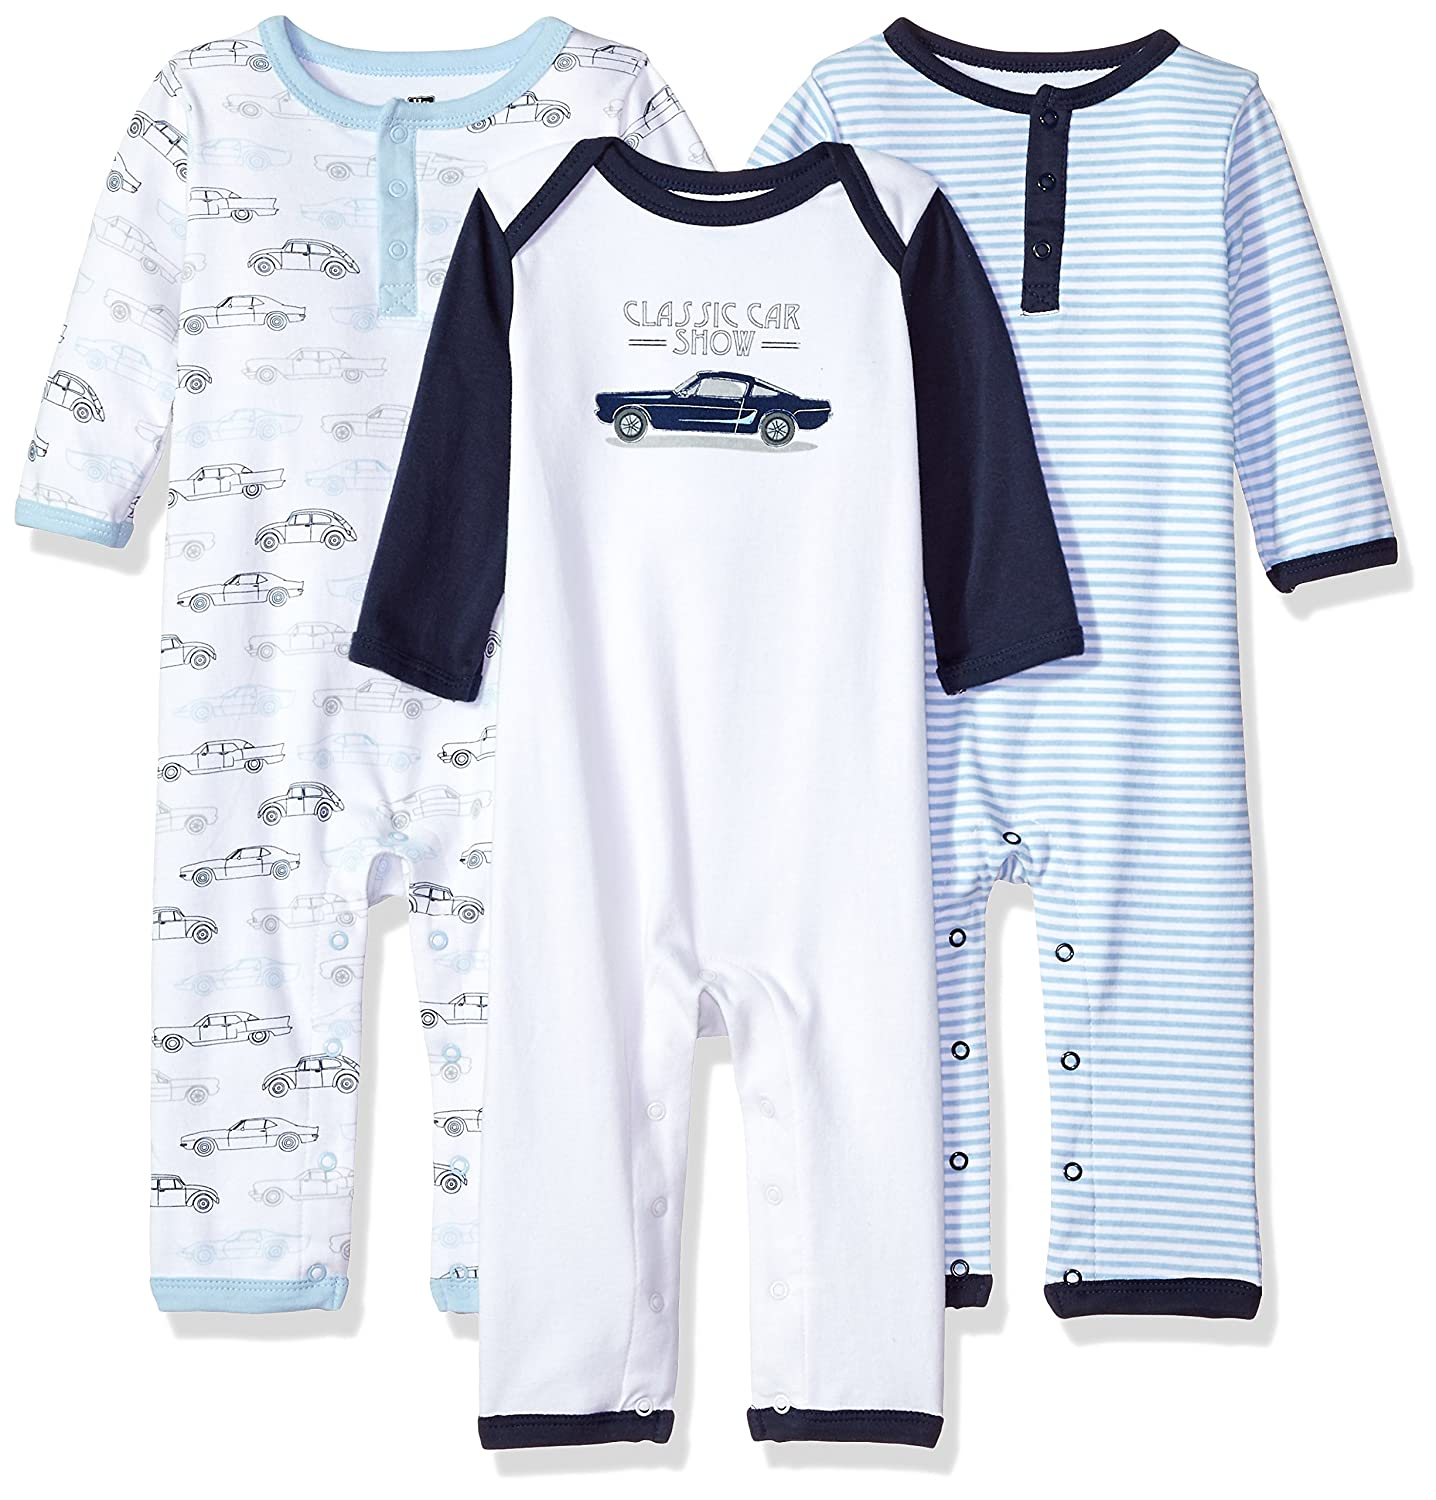 Hudson Baby Unisex-Baby Baby Cotton Union Suit, 3 Pack 10151287